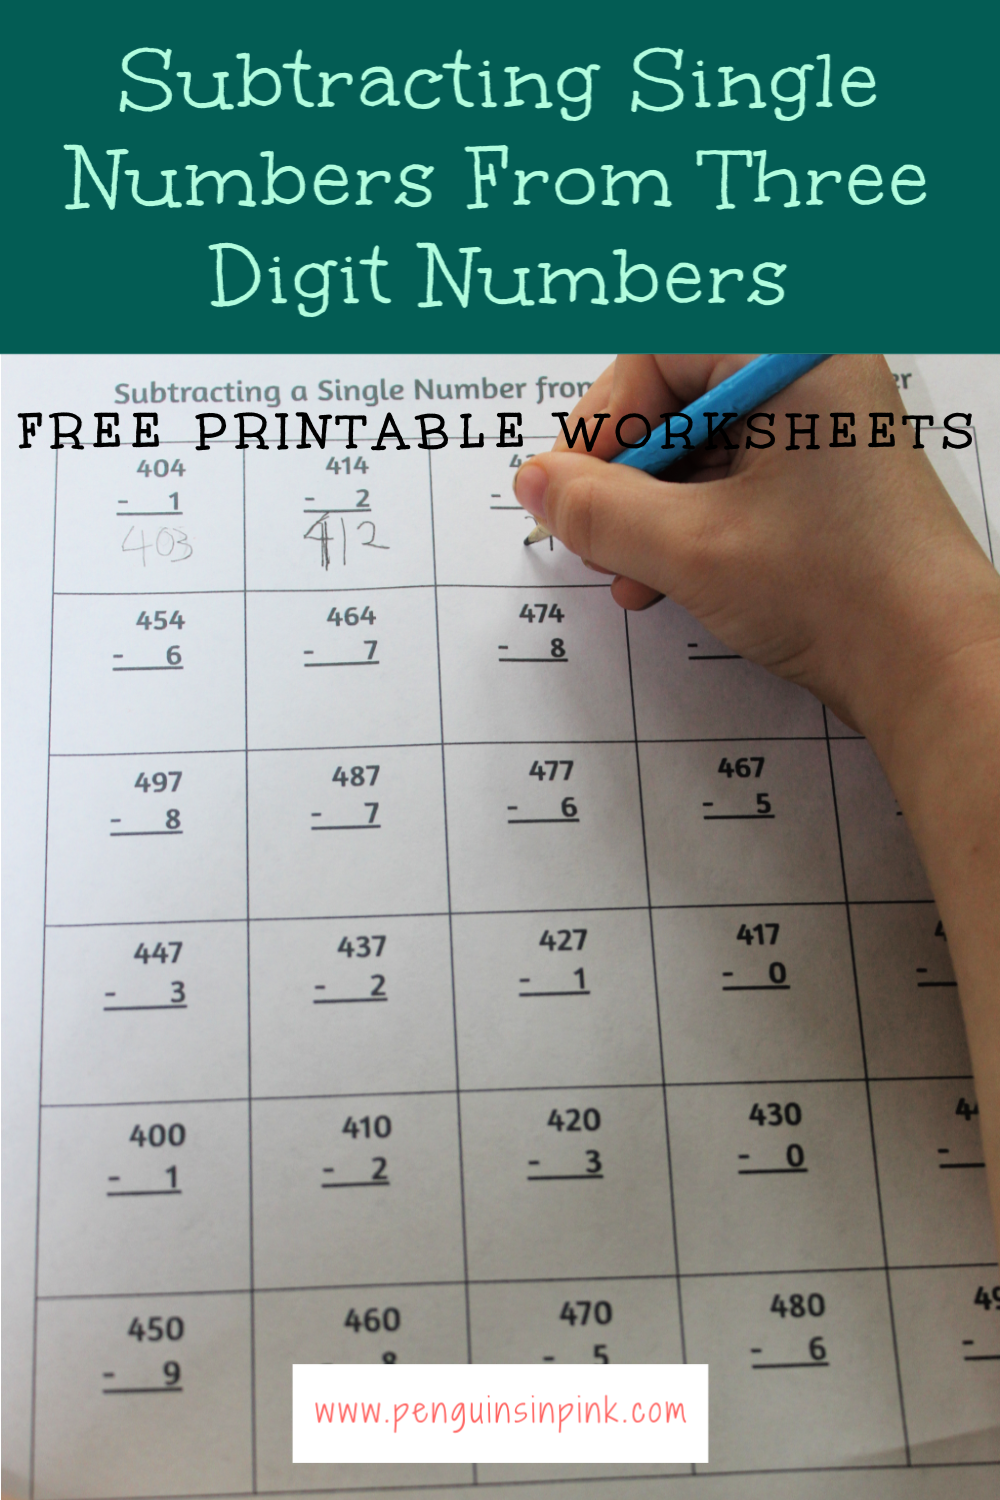 These FREE printable subtracting single numbers from three digit numbers worksheets contain 13 pages of subtracting from 100 to 999. Each page of the packet contains 30 problems.